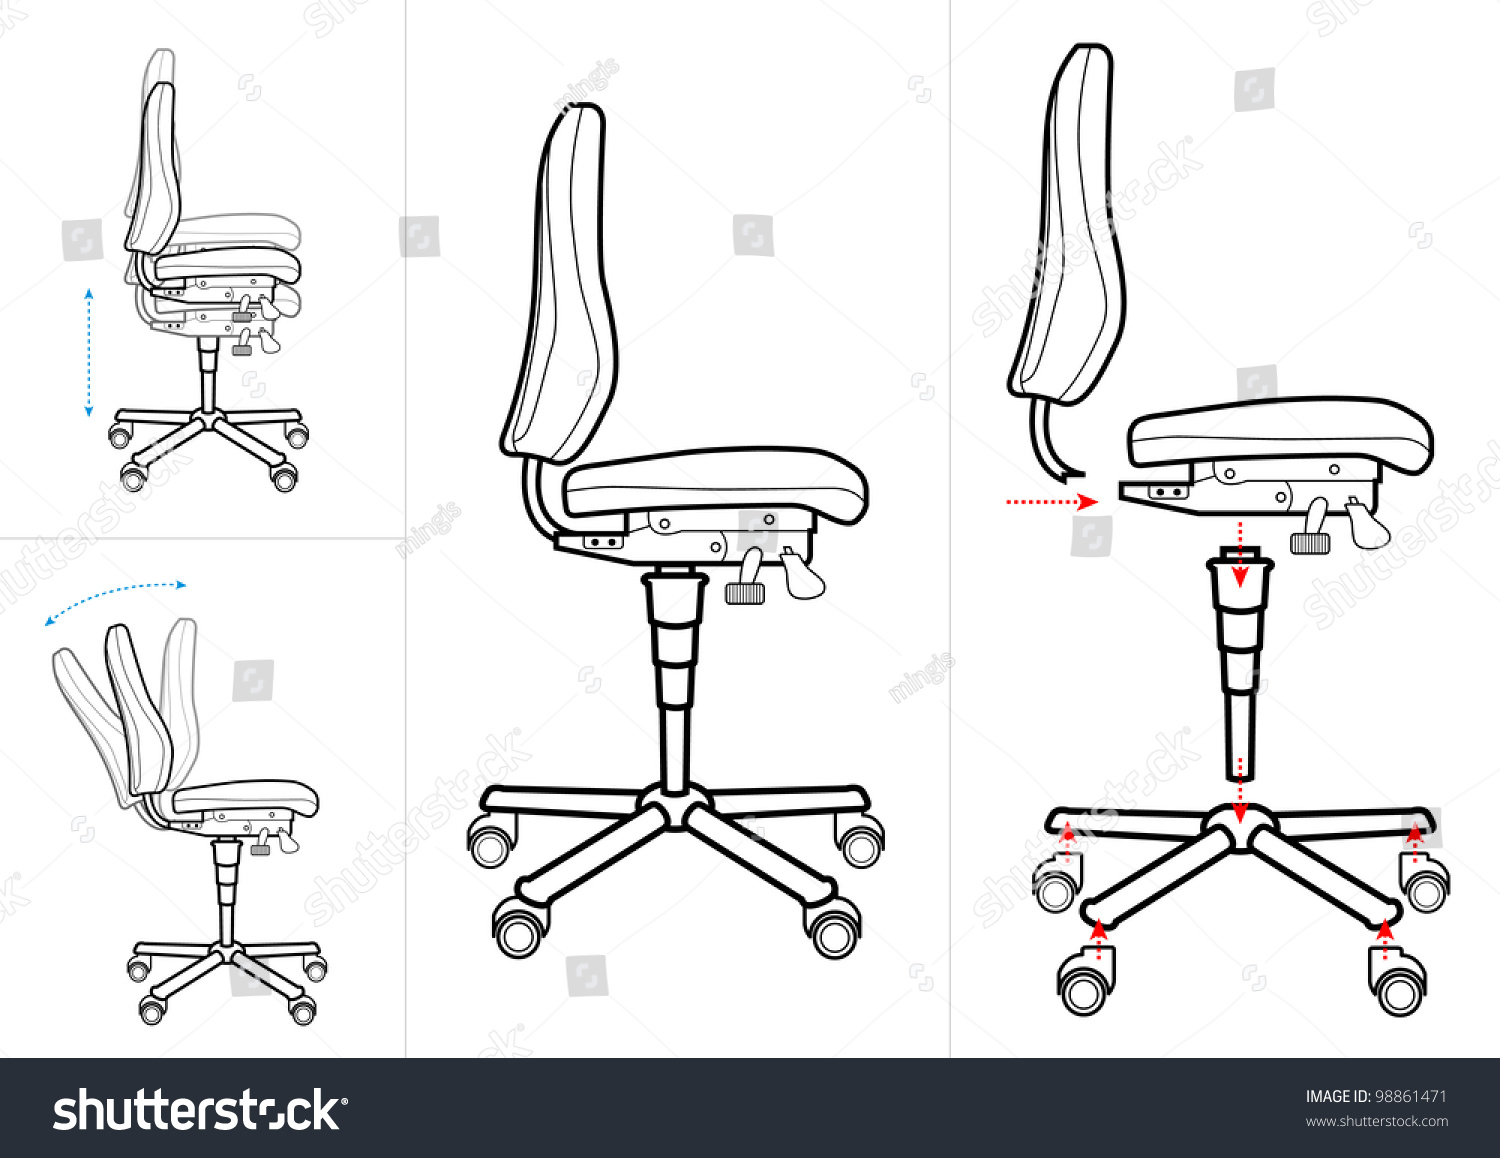 ergonomic chair instructions wood repairs office drawing stock vector 98861471